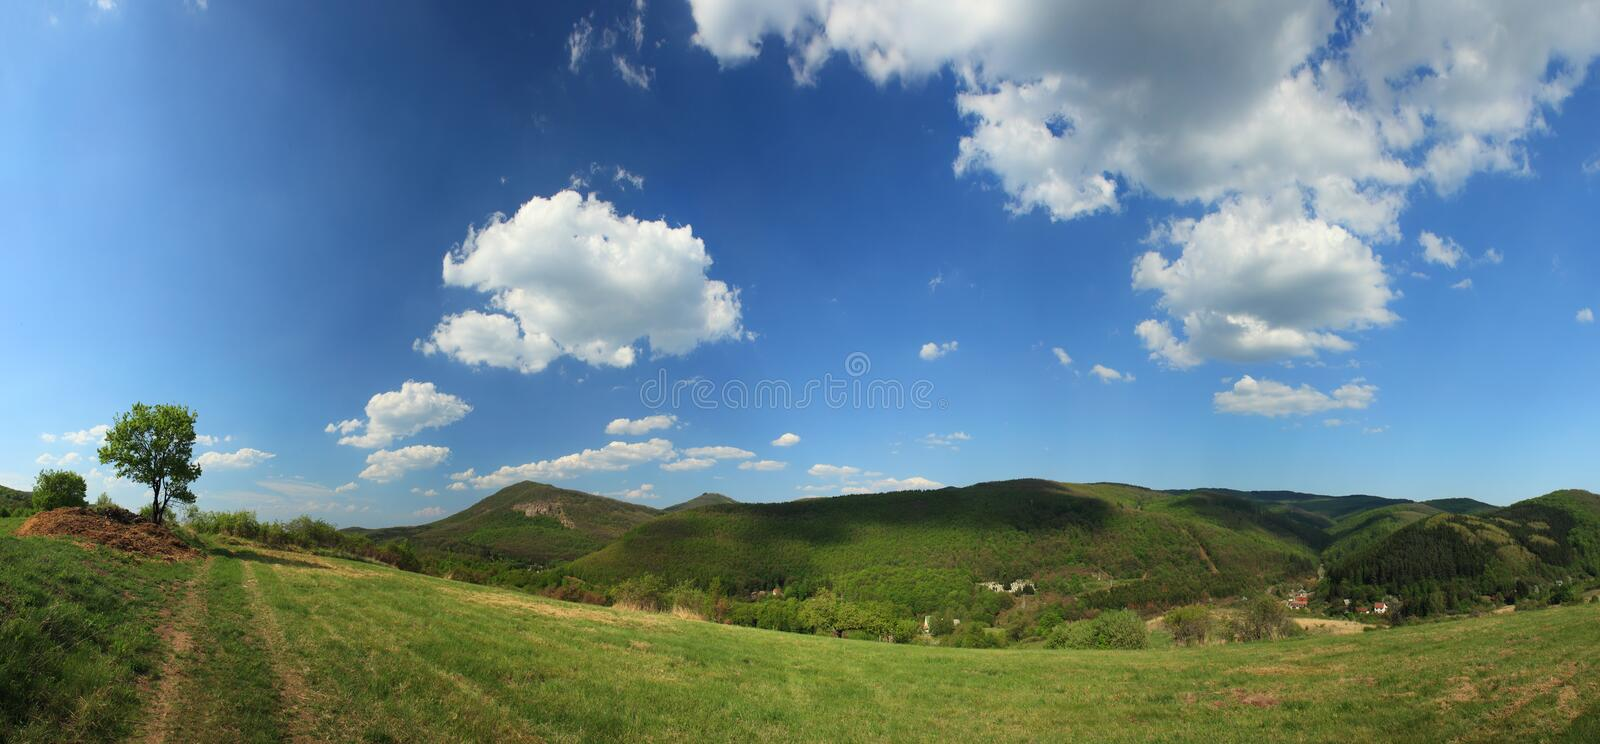 Panorama landscape royalty free stock images